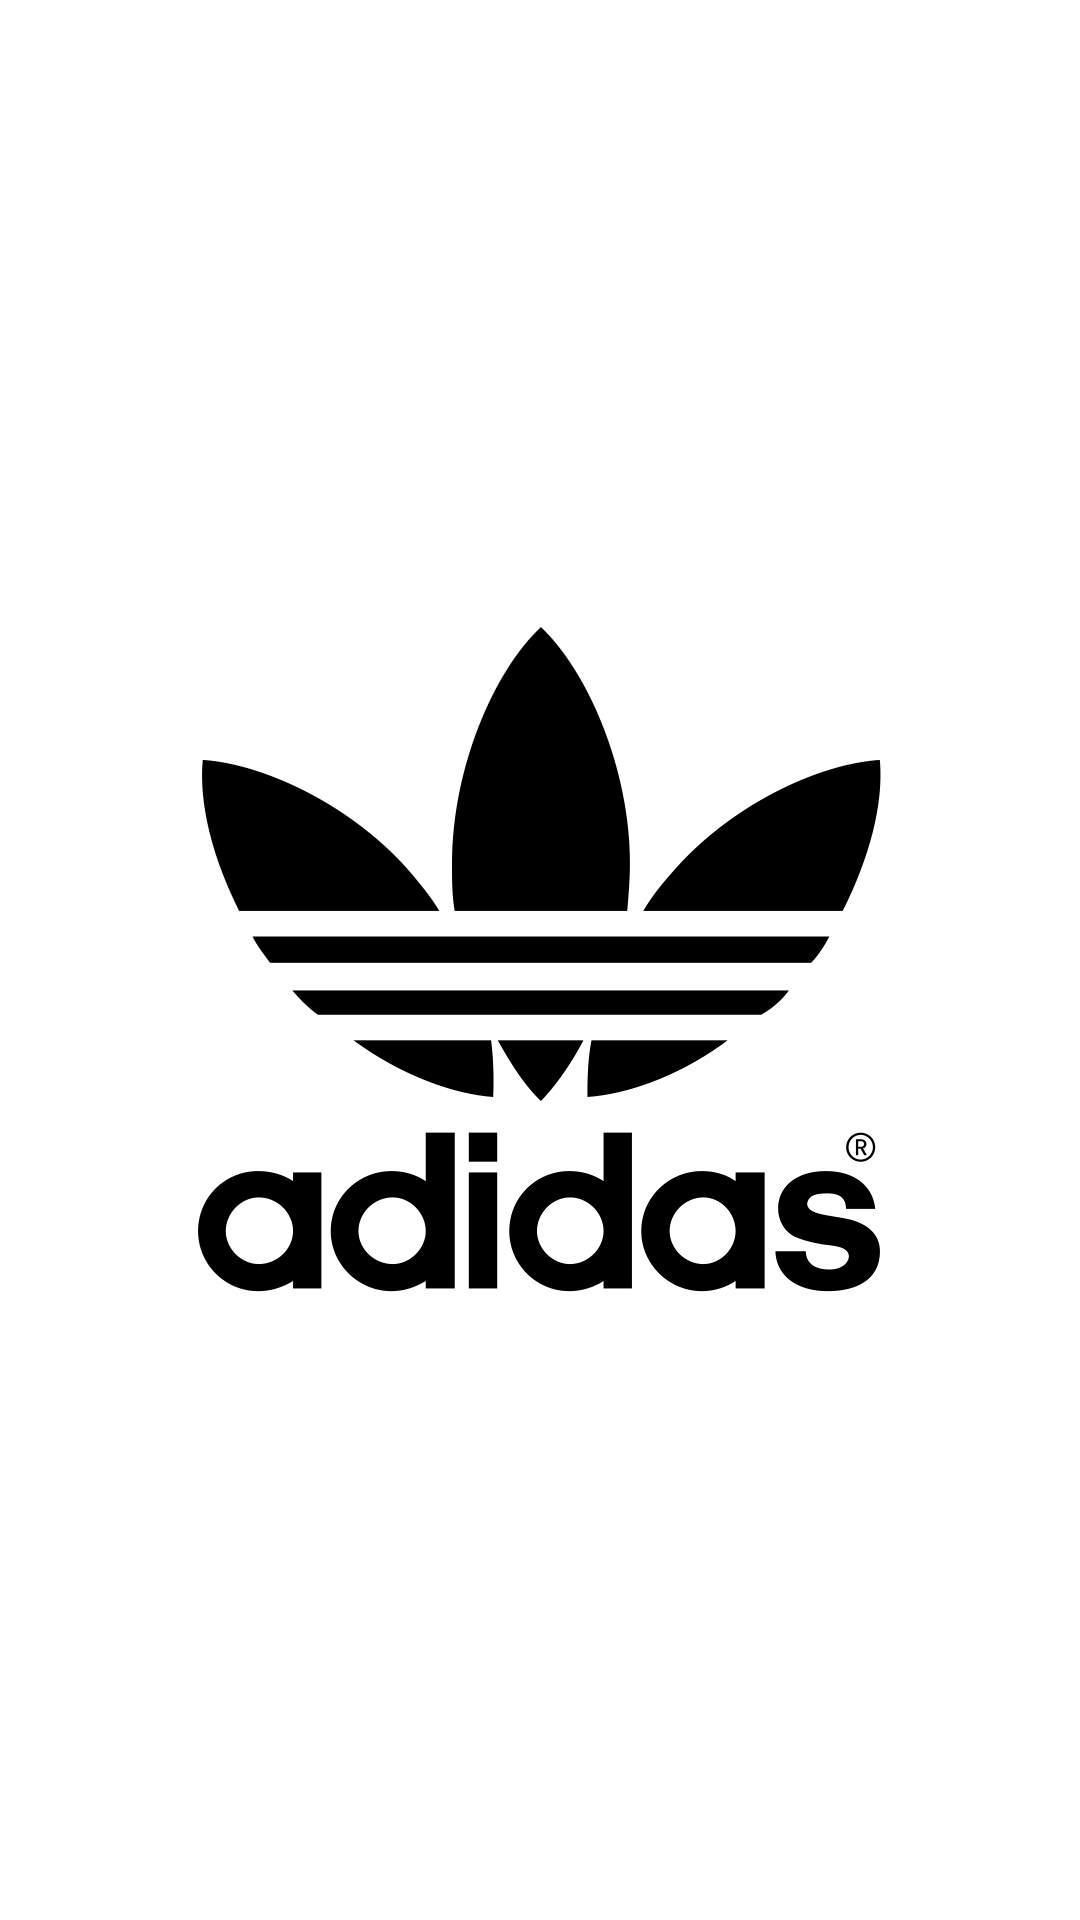 Adidas Black And White Wallpapers Top Free Adidas Black And White Backgrounds Wallpaperaccess